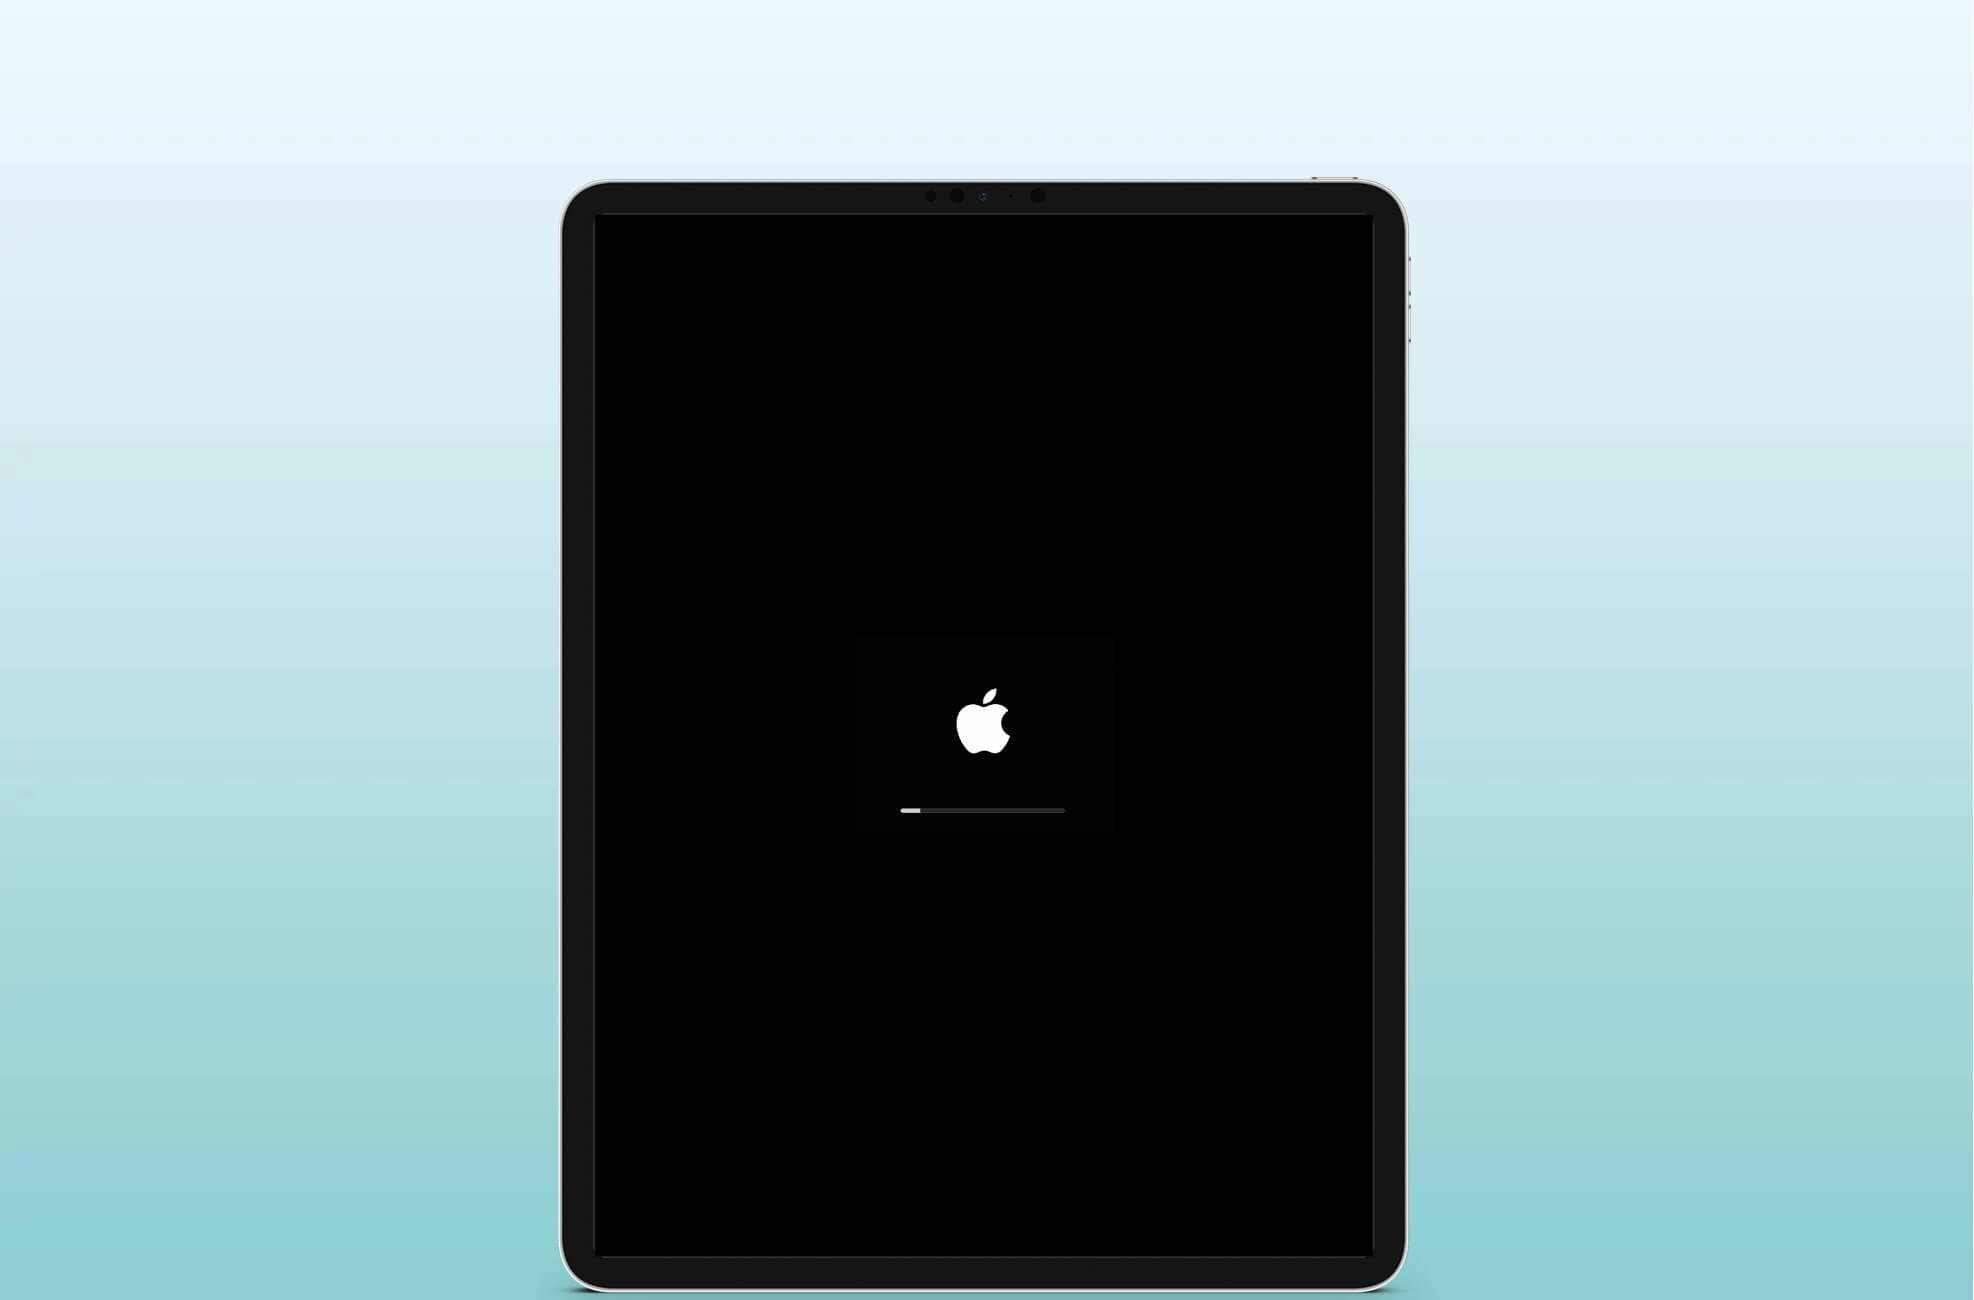 Restart iPad that has Face ID